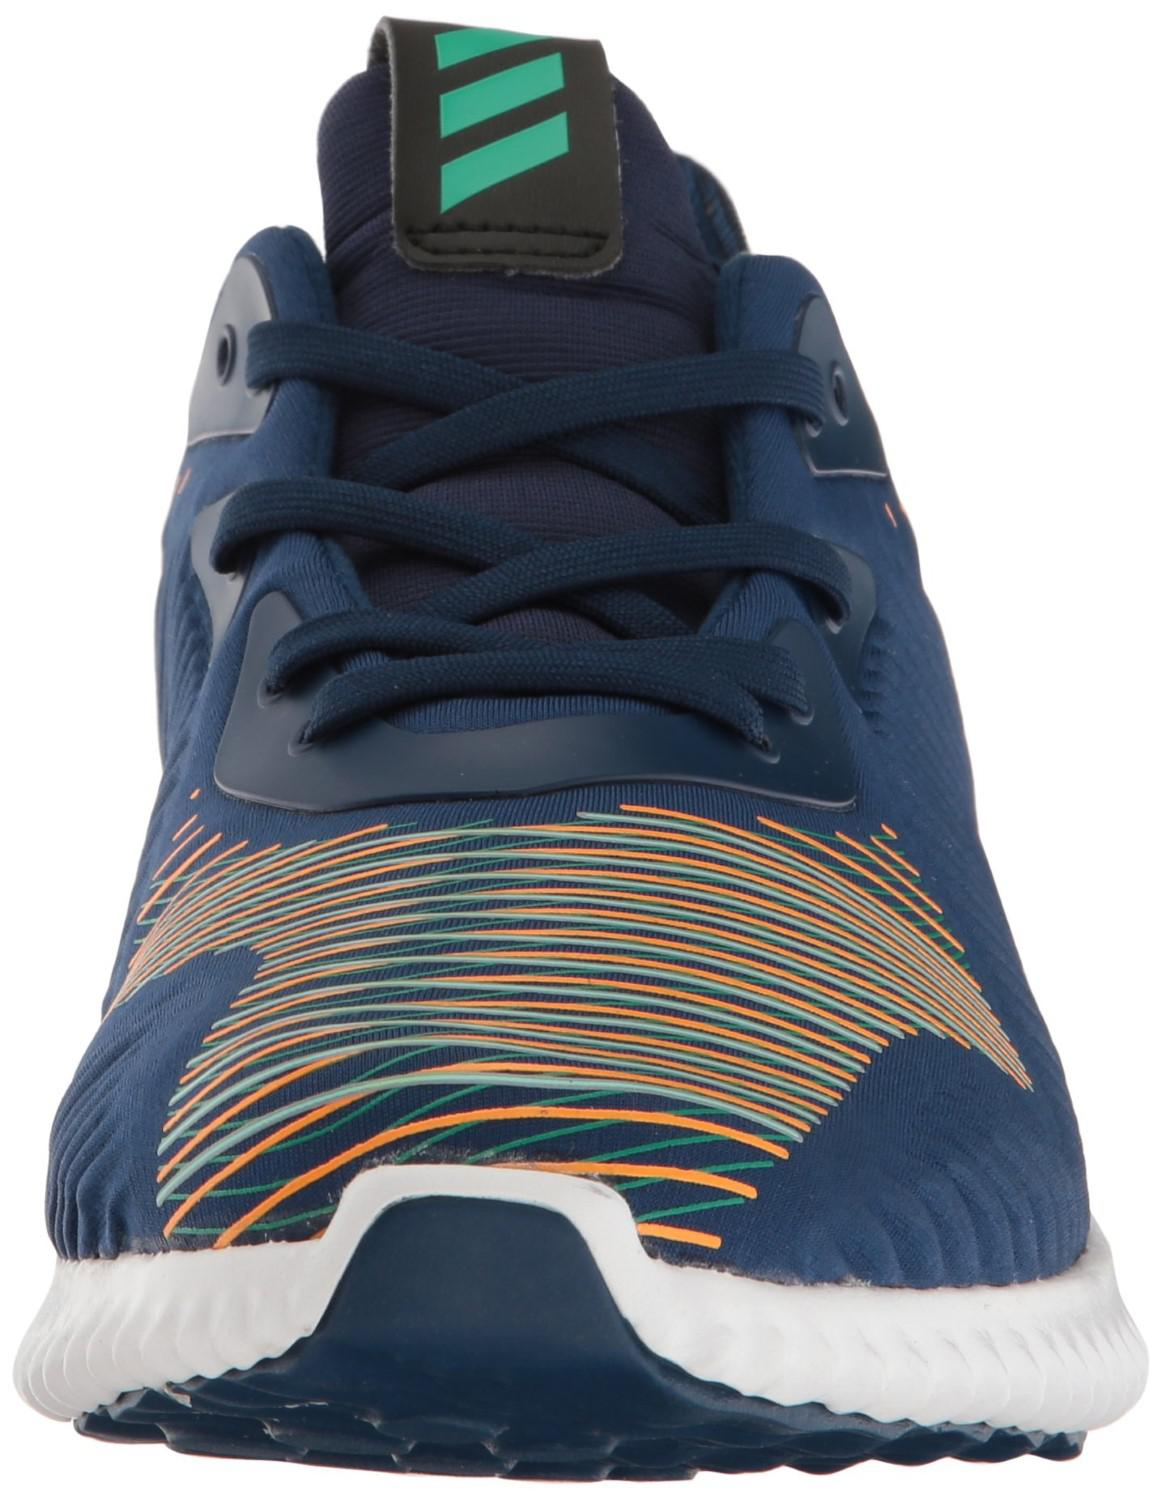 760239532 Lyst - adidas Performance Alphabounce Hpc M Running Shoe in Blue for Men